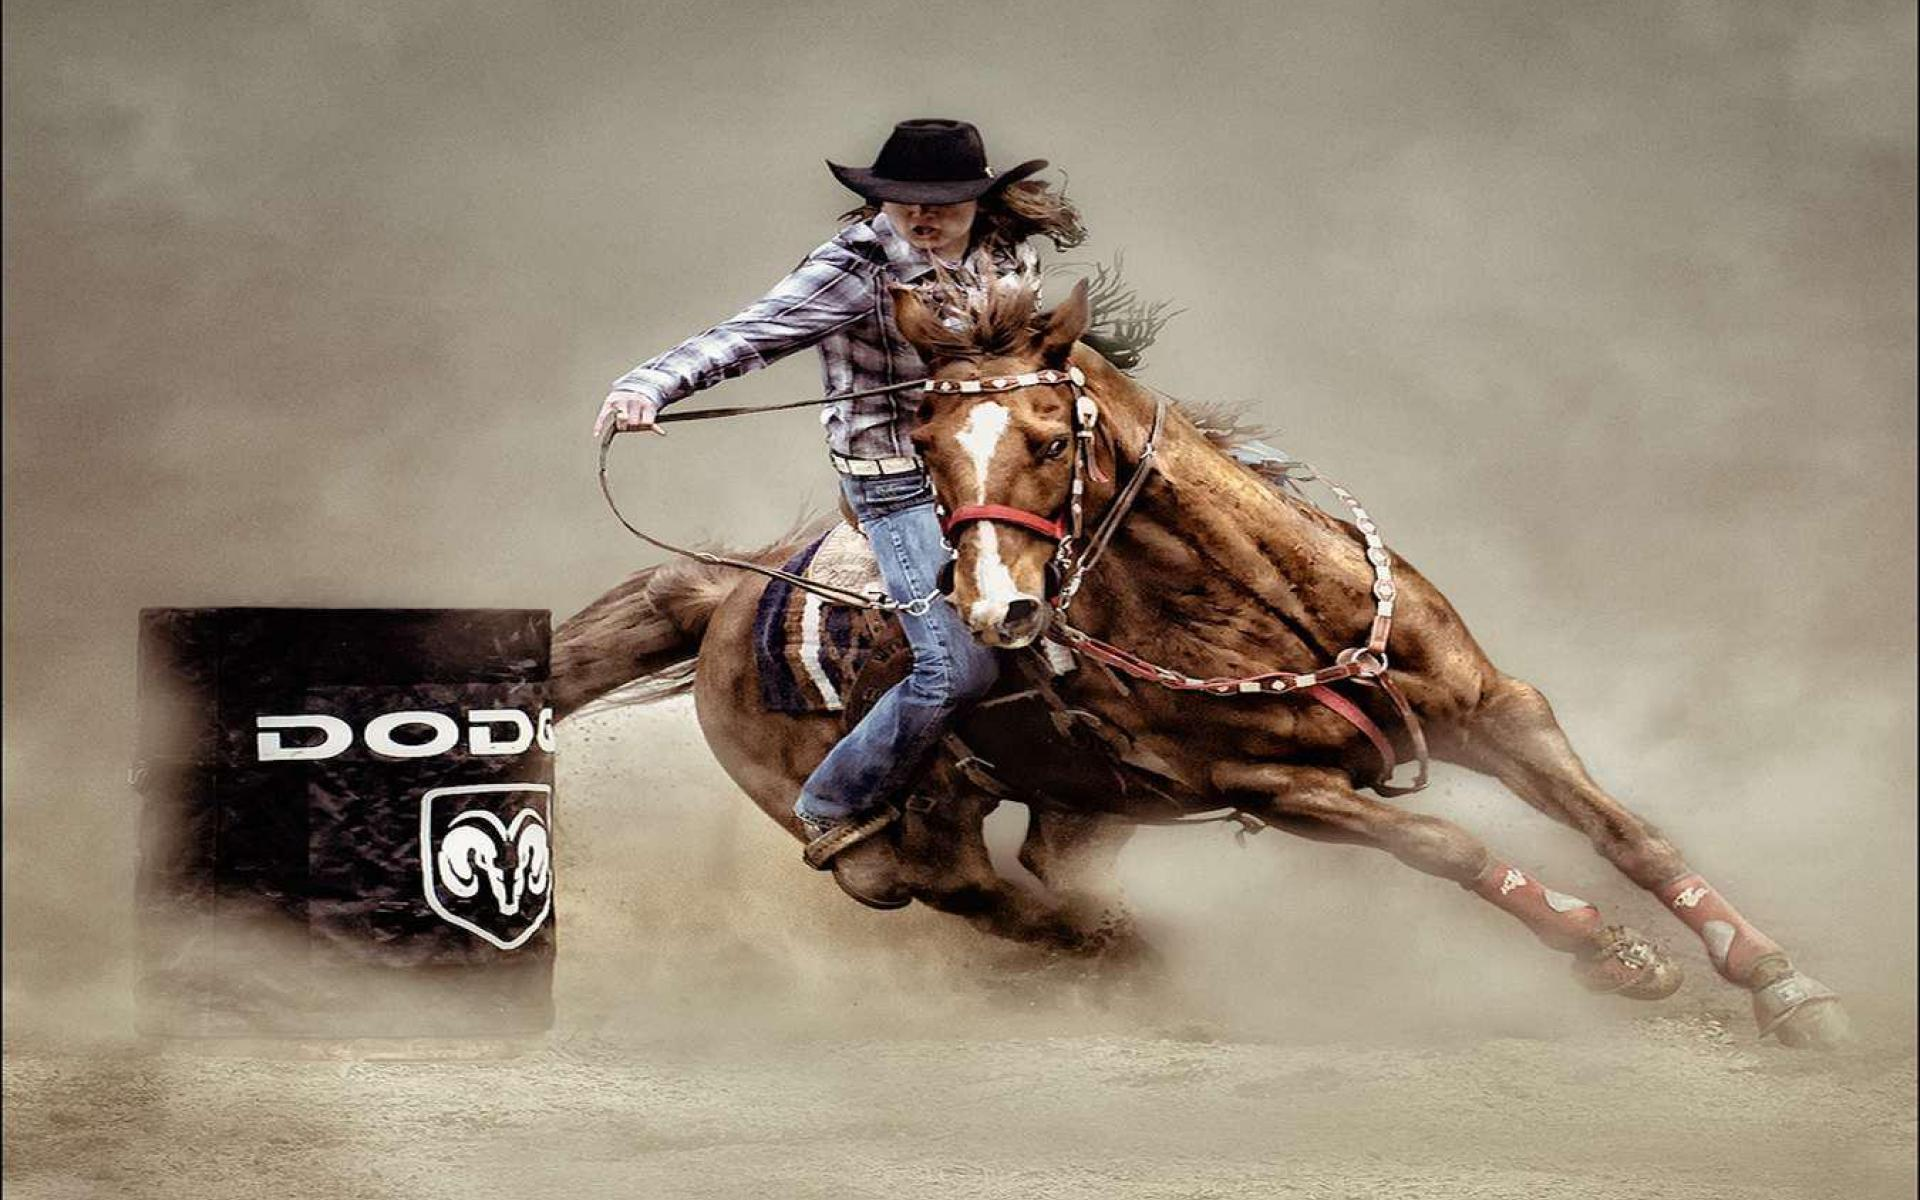 Rodeo Wallpaper